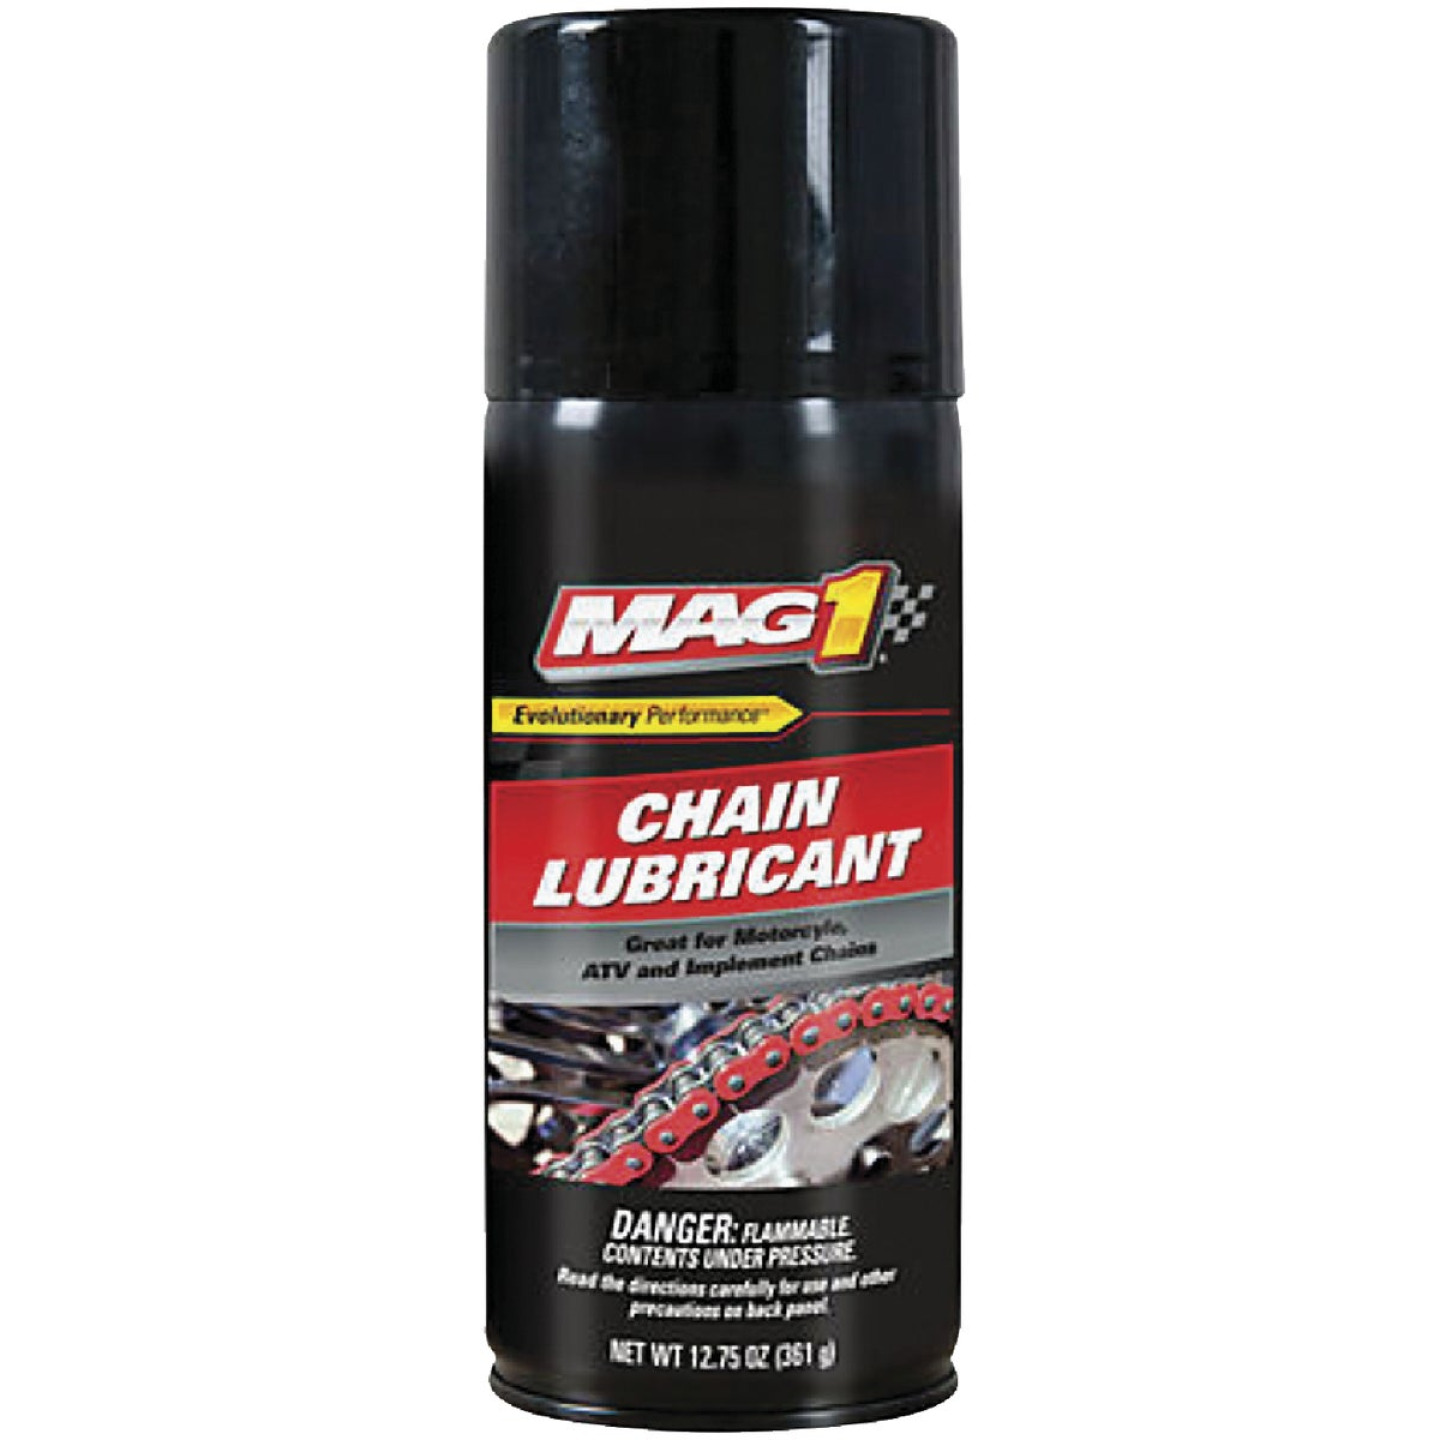 LubriMatic 12 Oz. Aerosol Spray Cable and Chain Lubricant Image 1